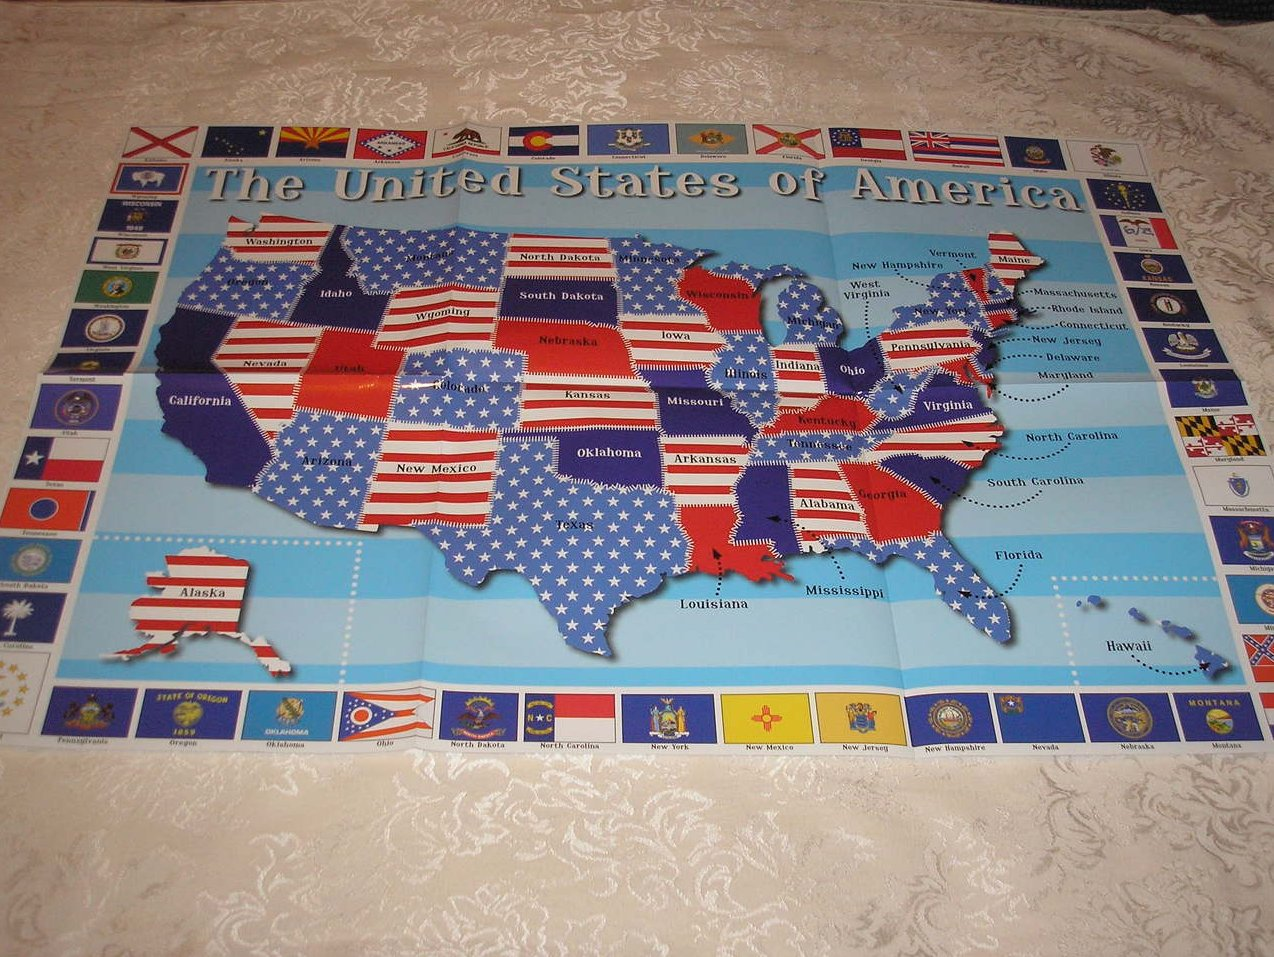 Image 5 of Oh Say! Can You See Francis Scott Key brand new large board book, CD, USA Poster